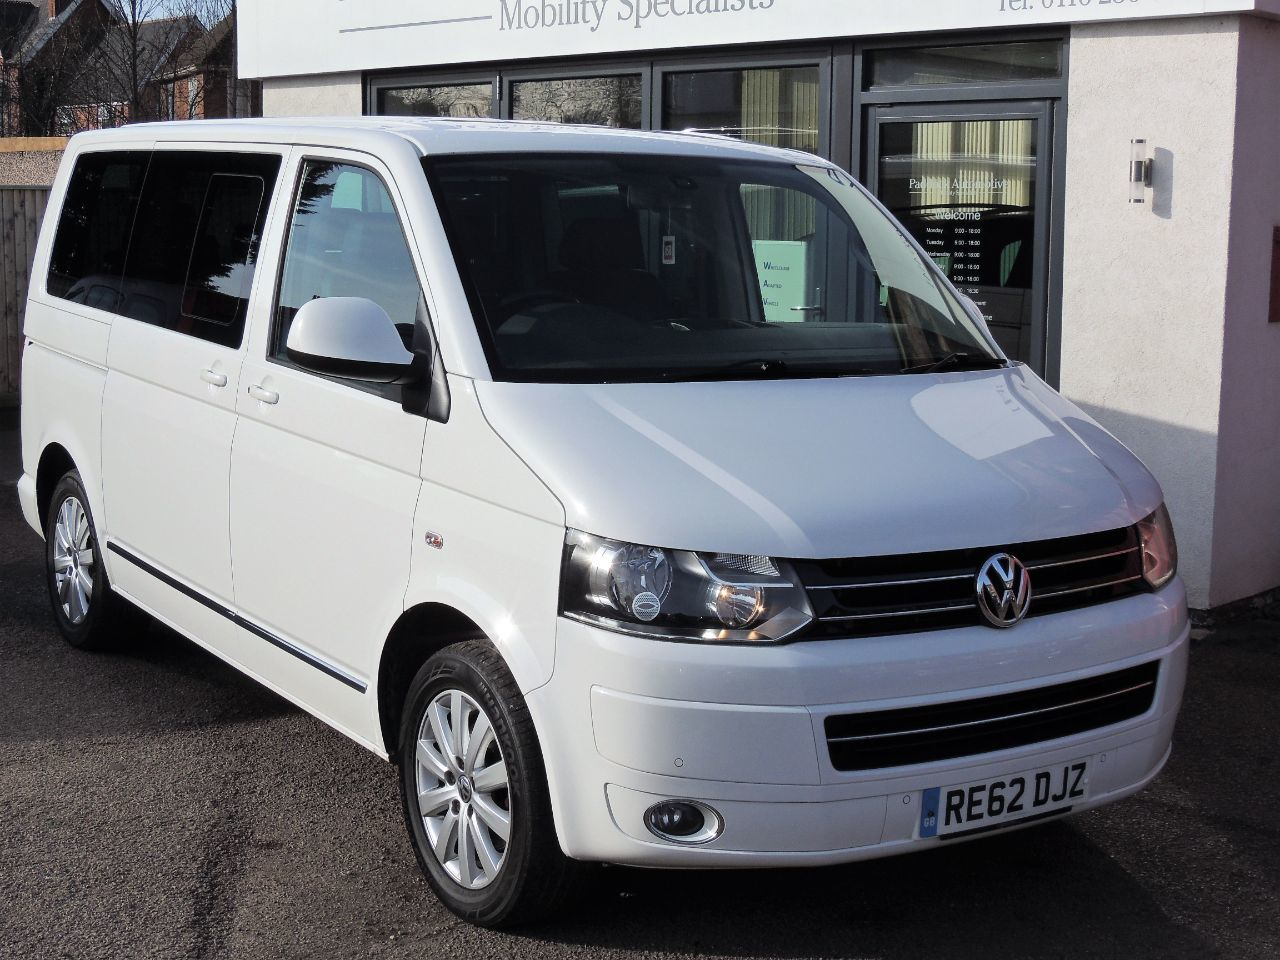 Volkswagen Caravelle 2.0 TDI Executive 140 5dr DSG - Not Wheelchair Adapted MPV Diesel White